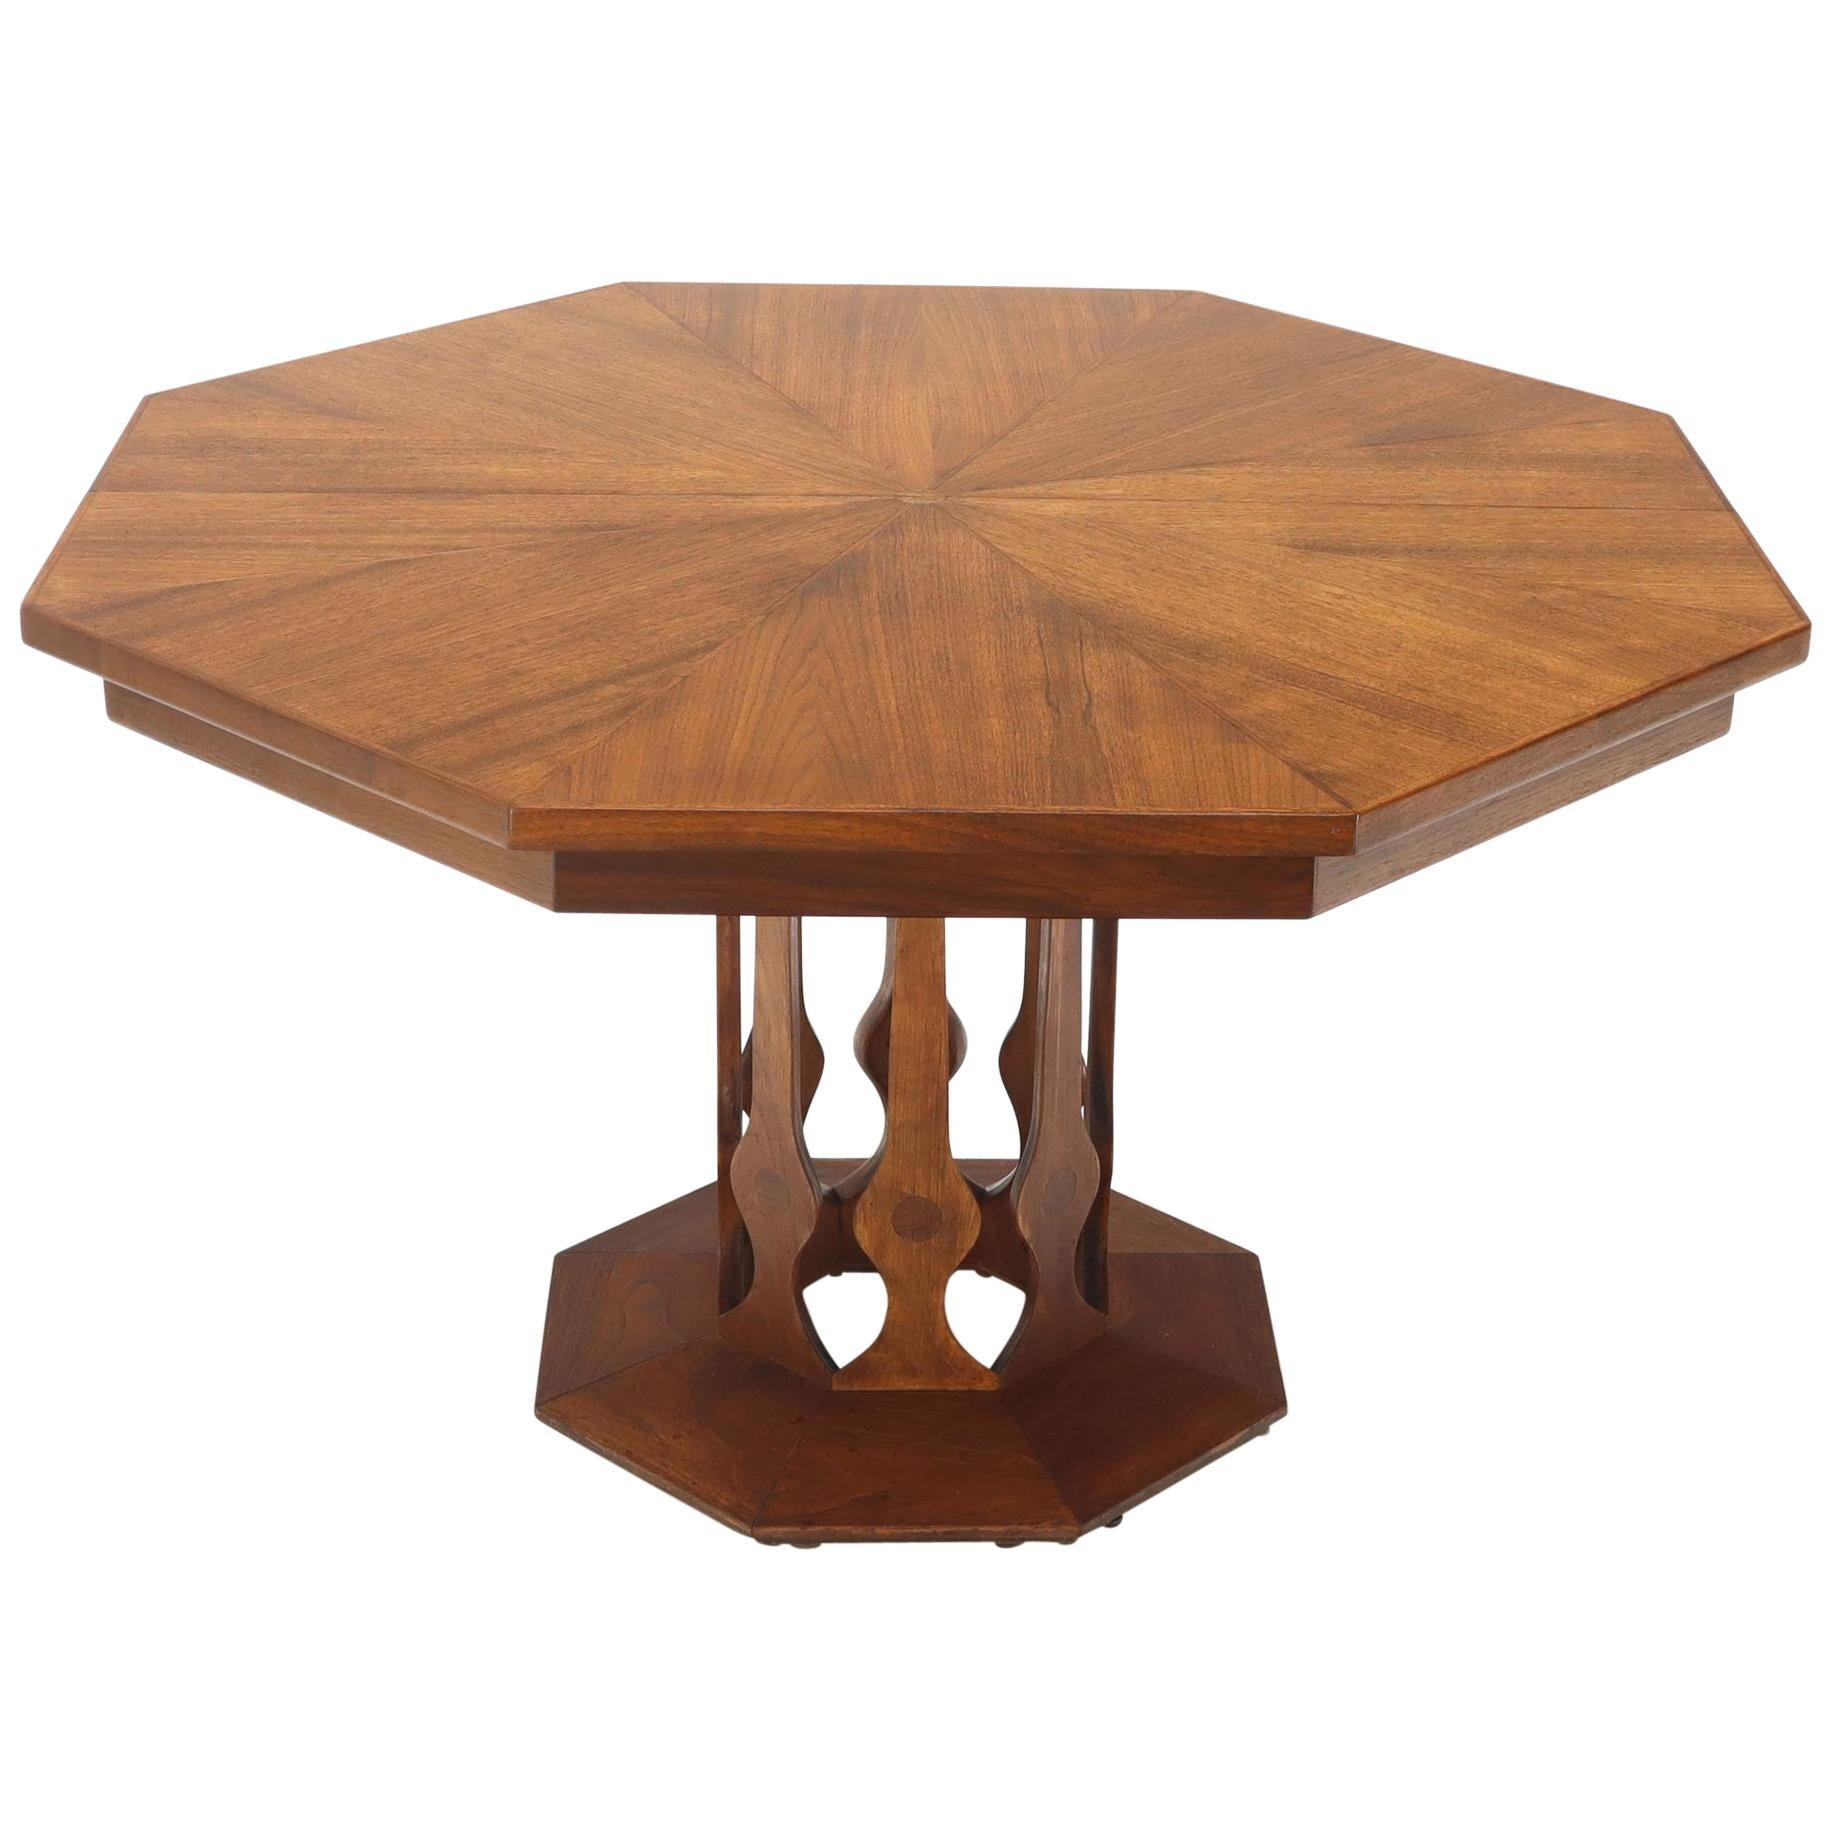 Round Dining Table With Extensions Oiled Walnut Octagonal Round Dining Table With Two Extension Leafs Probber Style